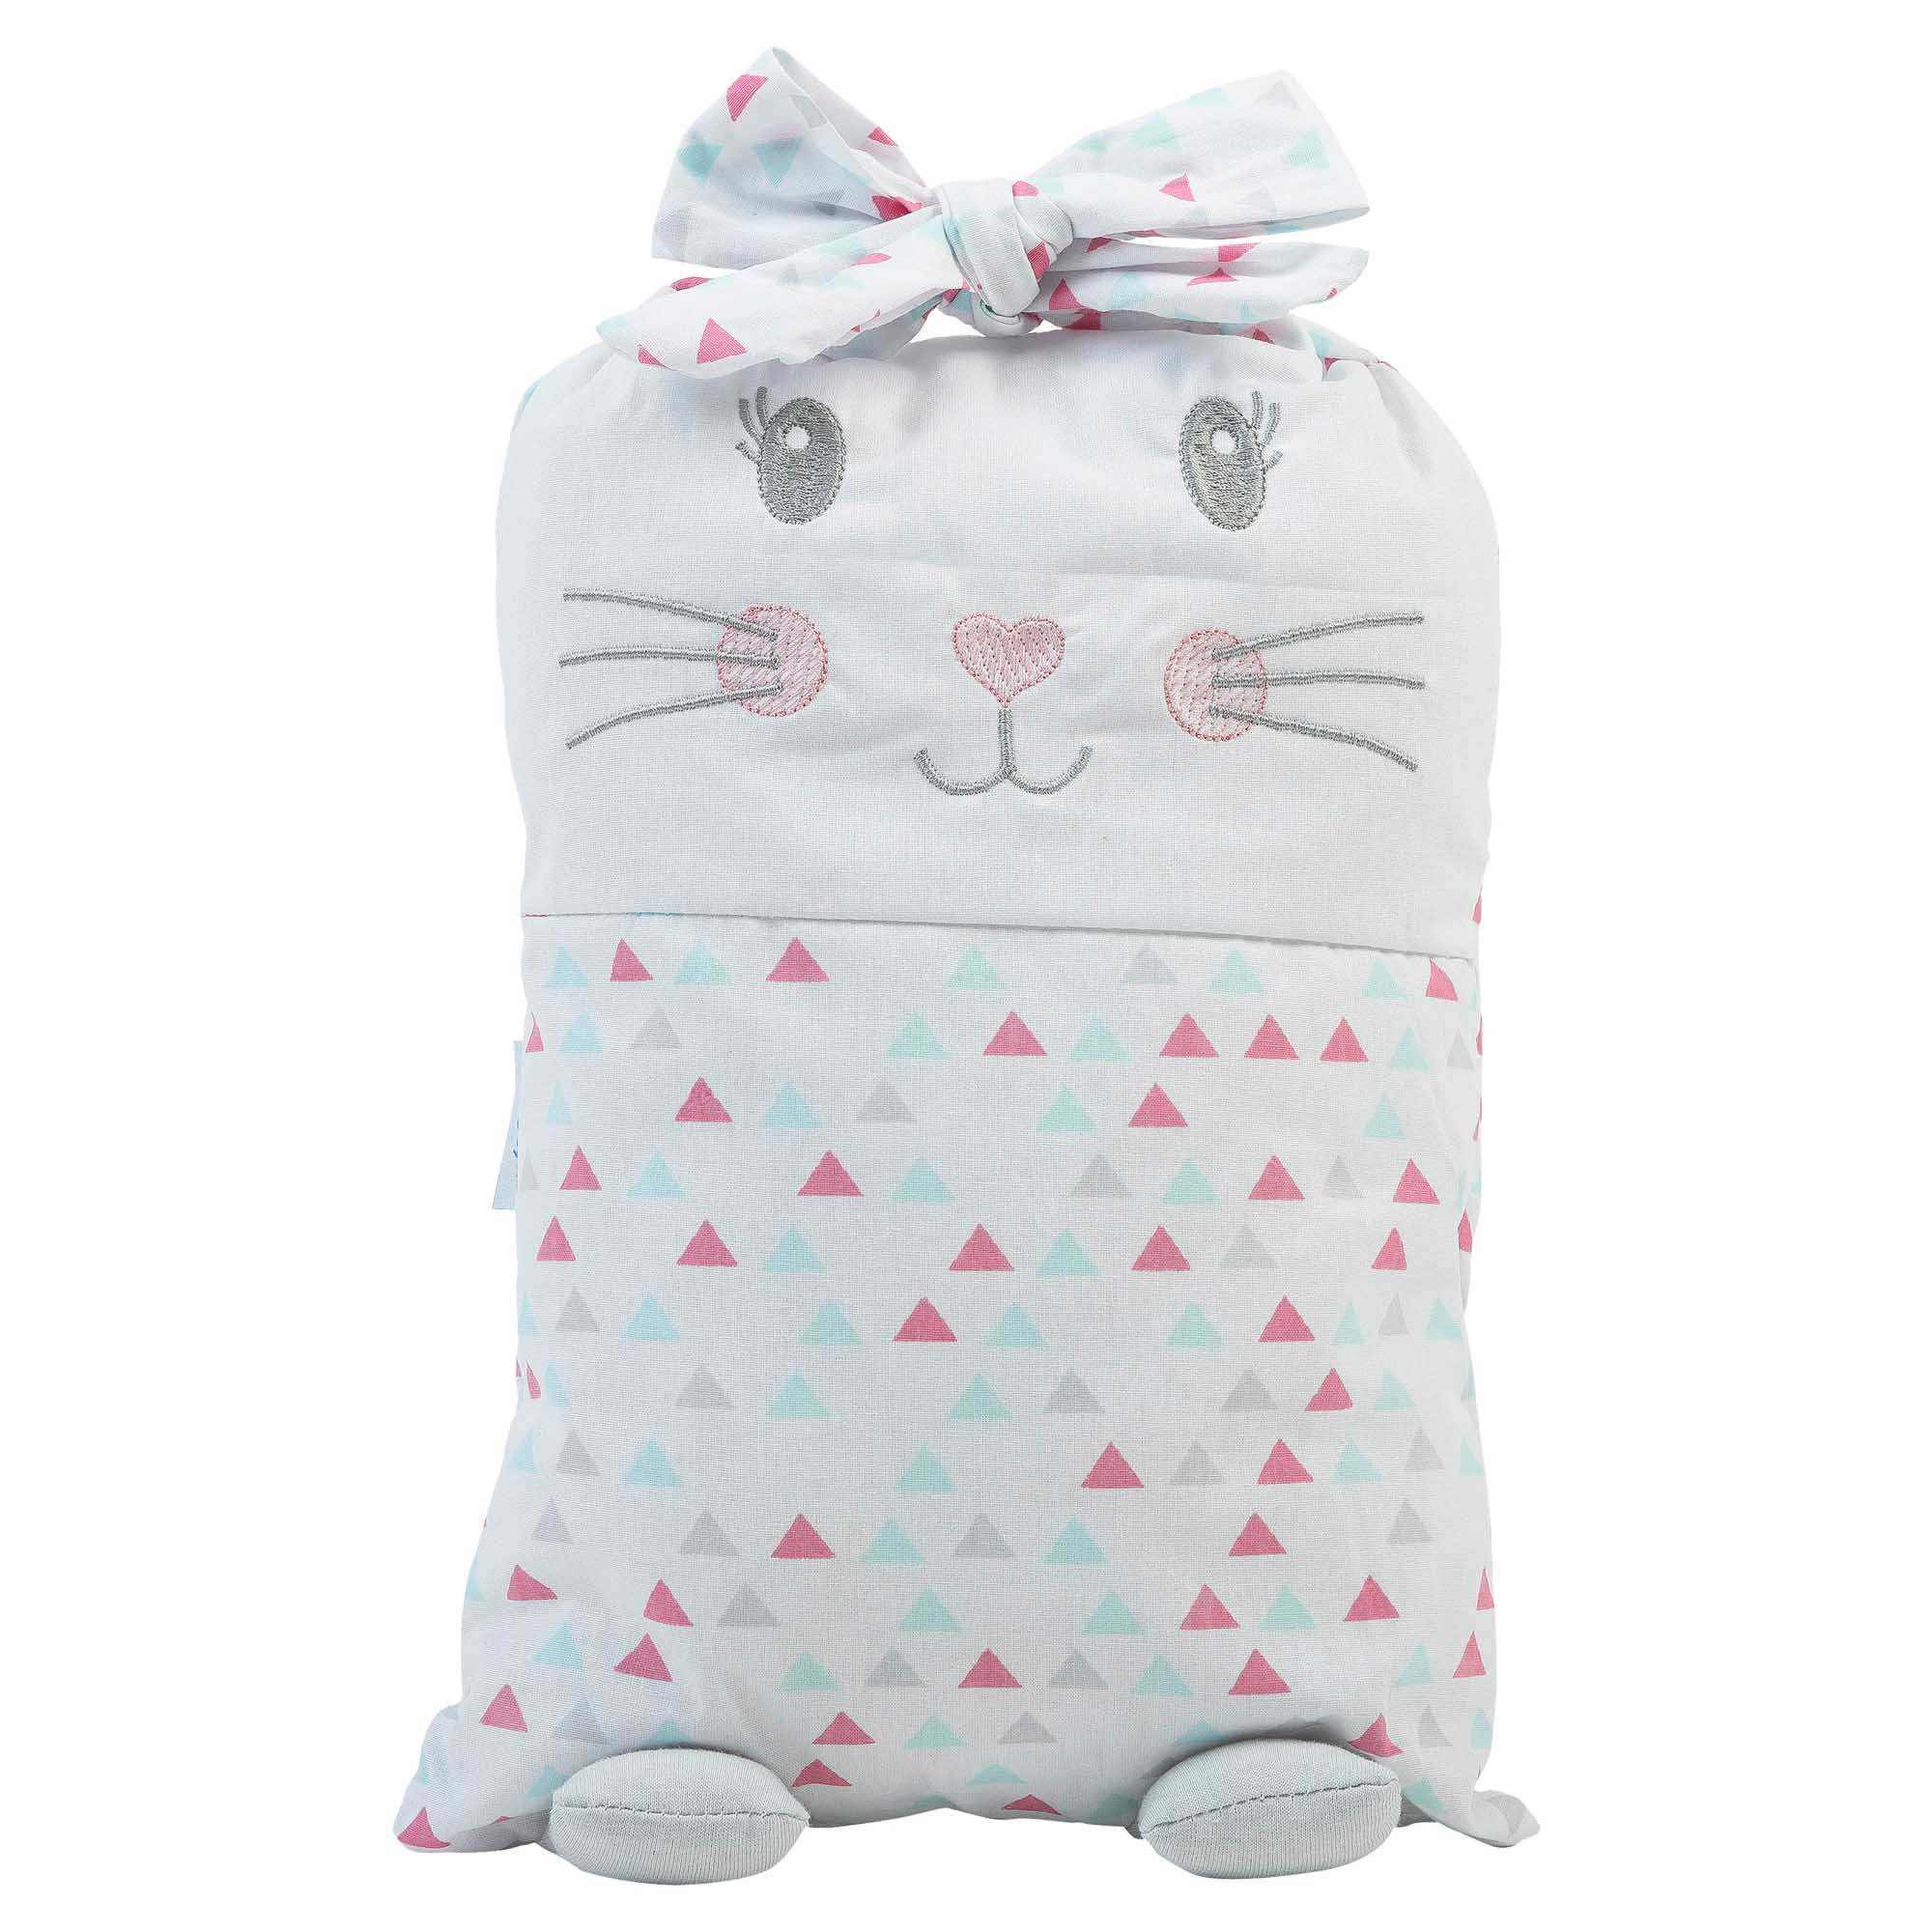 Almofada Mimiu Estampado com Bordado - Incomfral - Baby Joy Trends